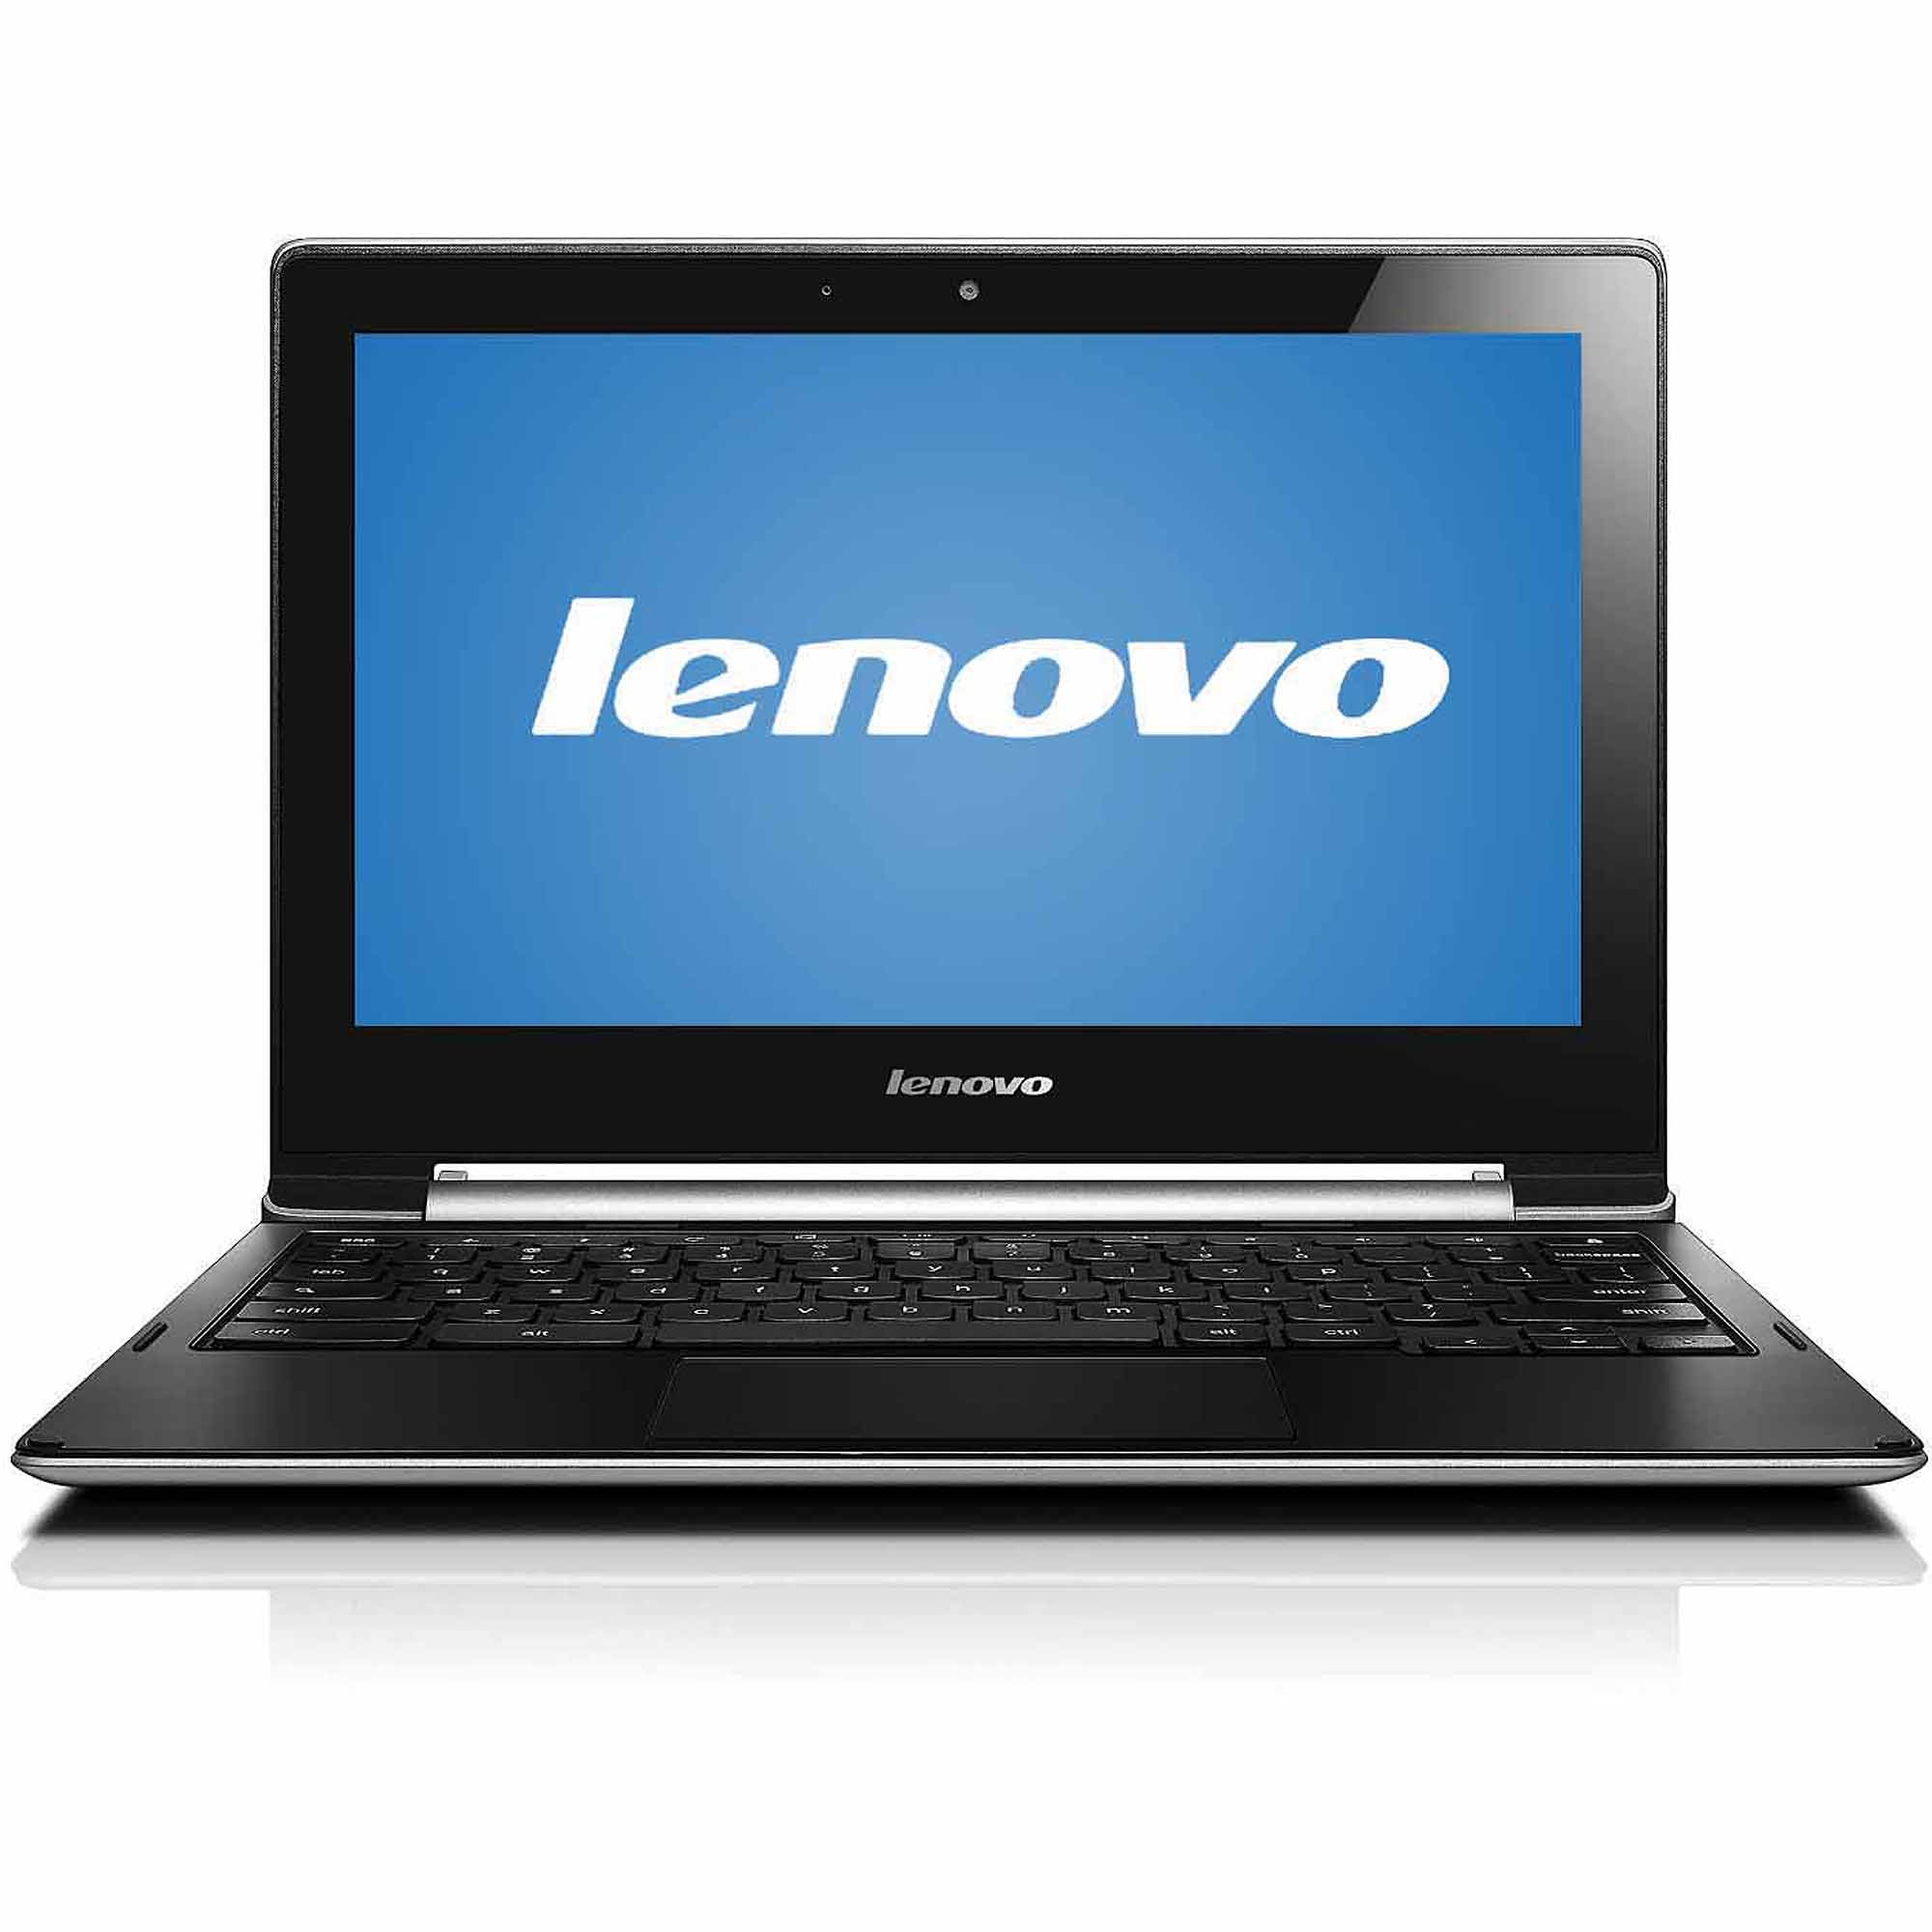 "Lenovo Silver 11.6"" IdeaPad N20p Chromebook PC with Intel Celeron N2830 Dual-Core Processor, 2GB Memory, touch screen, 16GB Solid State Drive and Chrome OS"